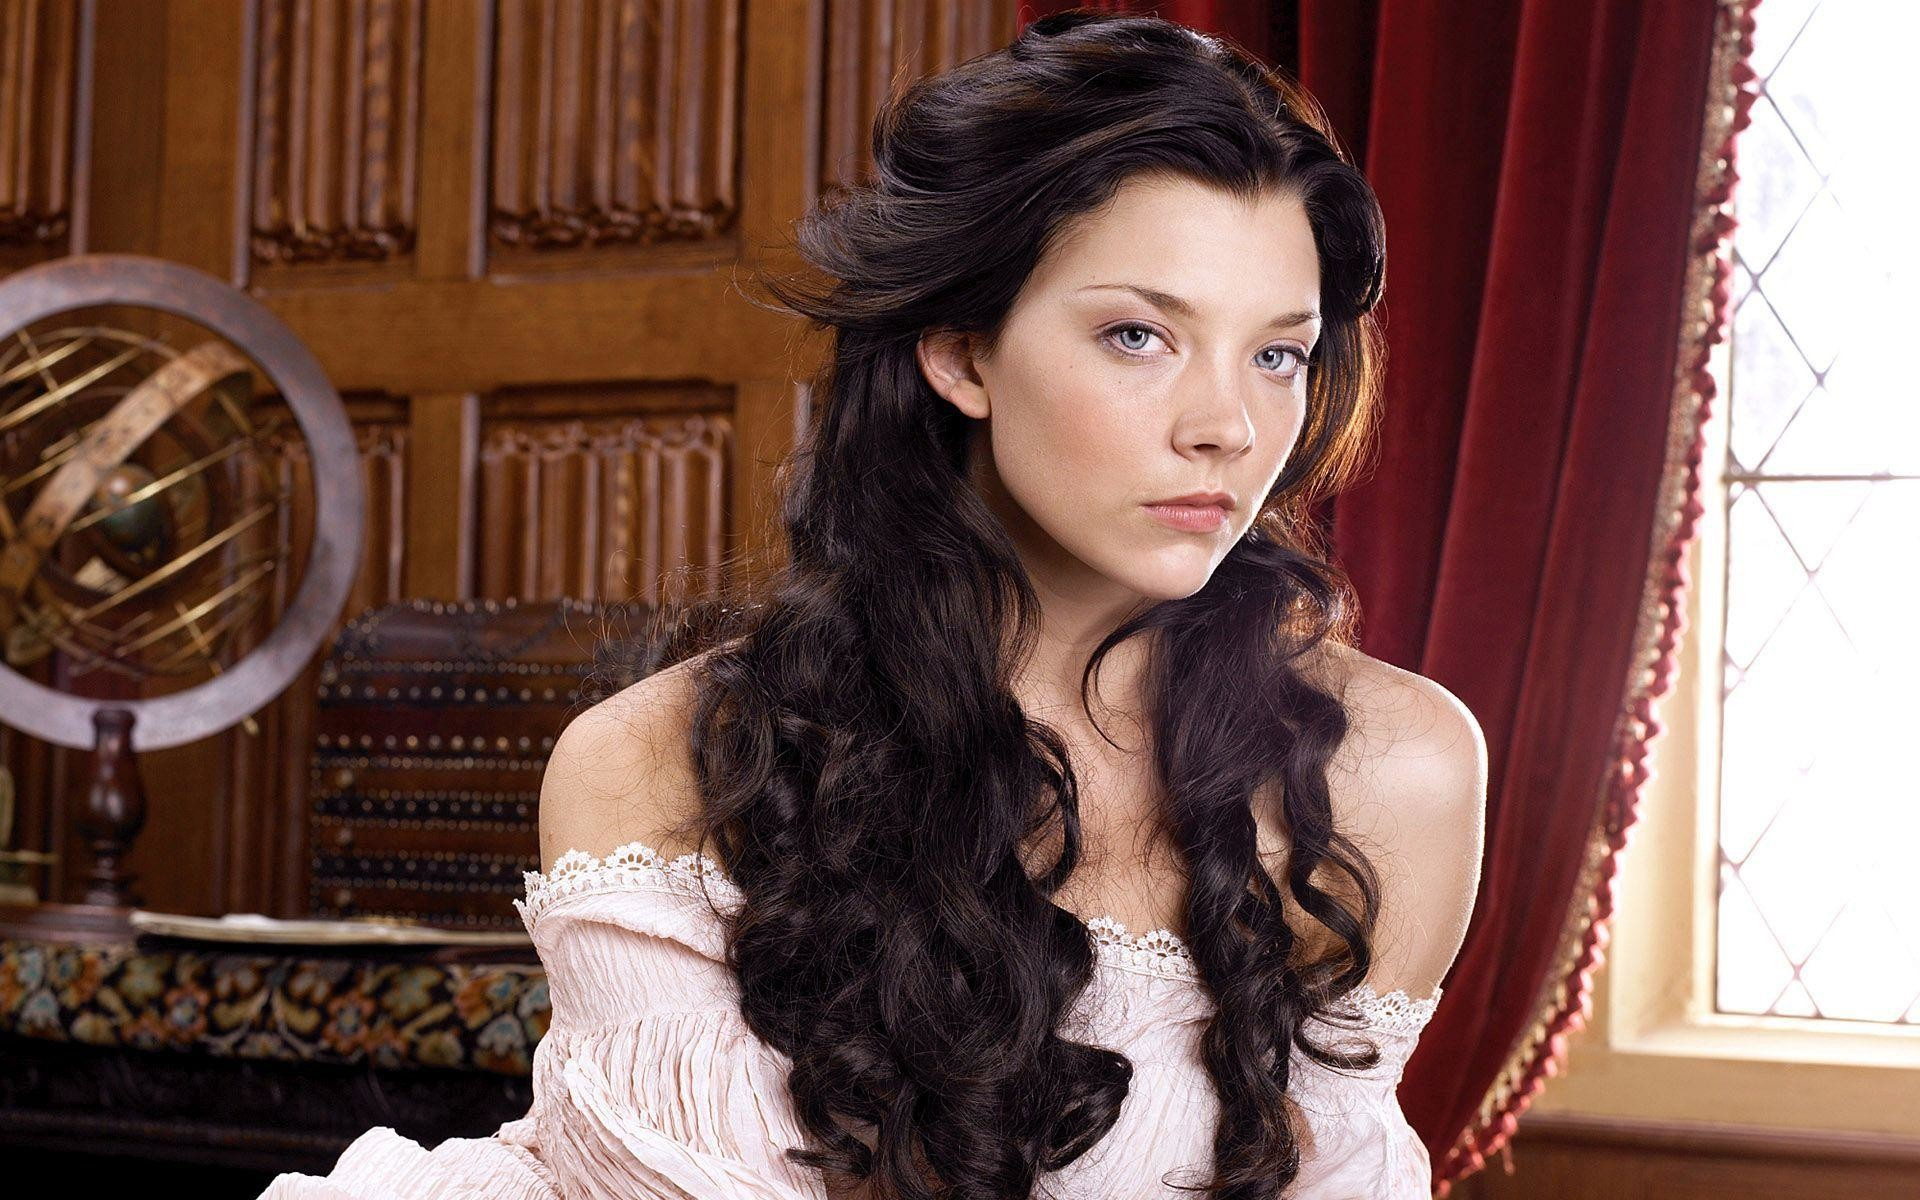 Related Wallpapers. Natalie Dormer with brunette curls